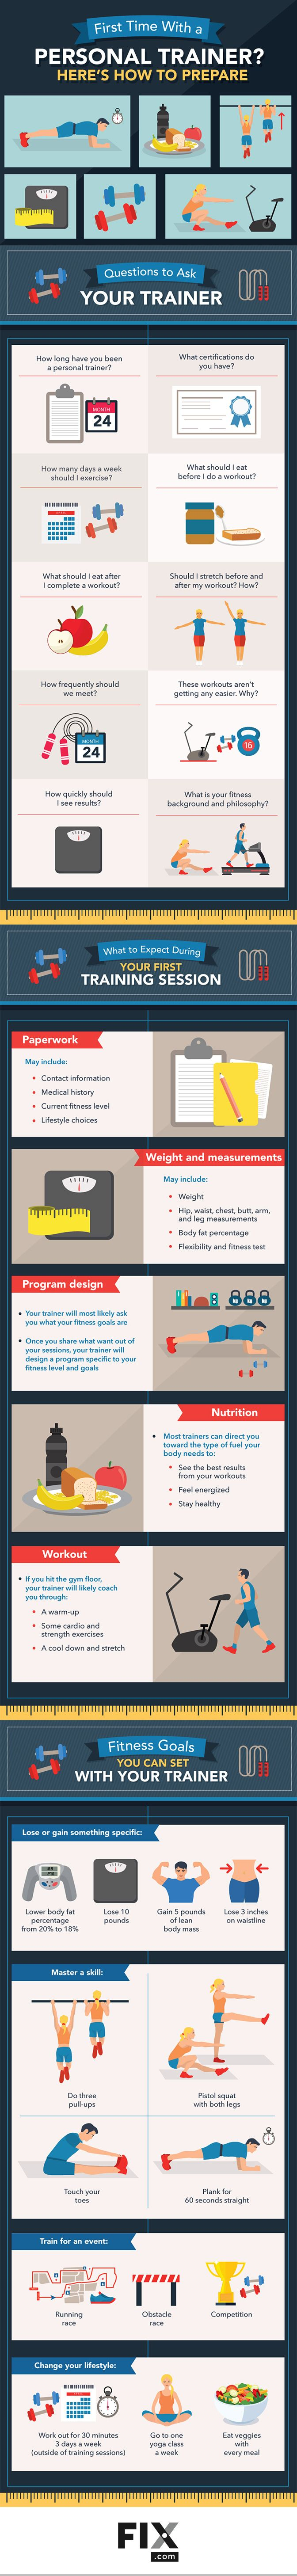 best Personal Trainer images on Pinterest  Personal fitness